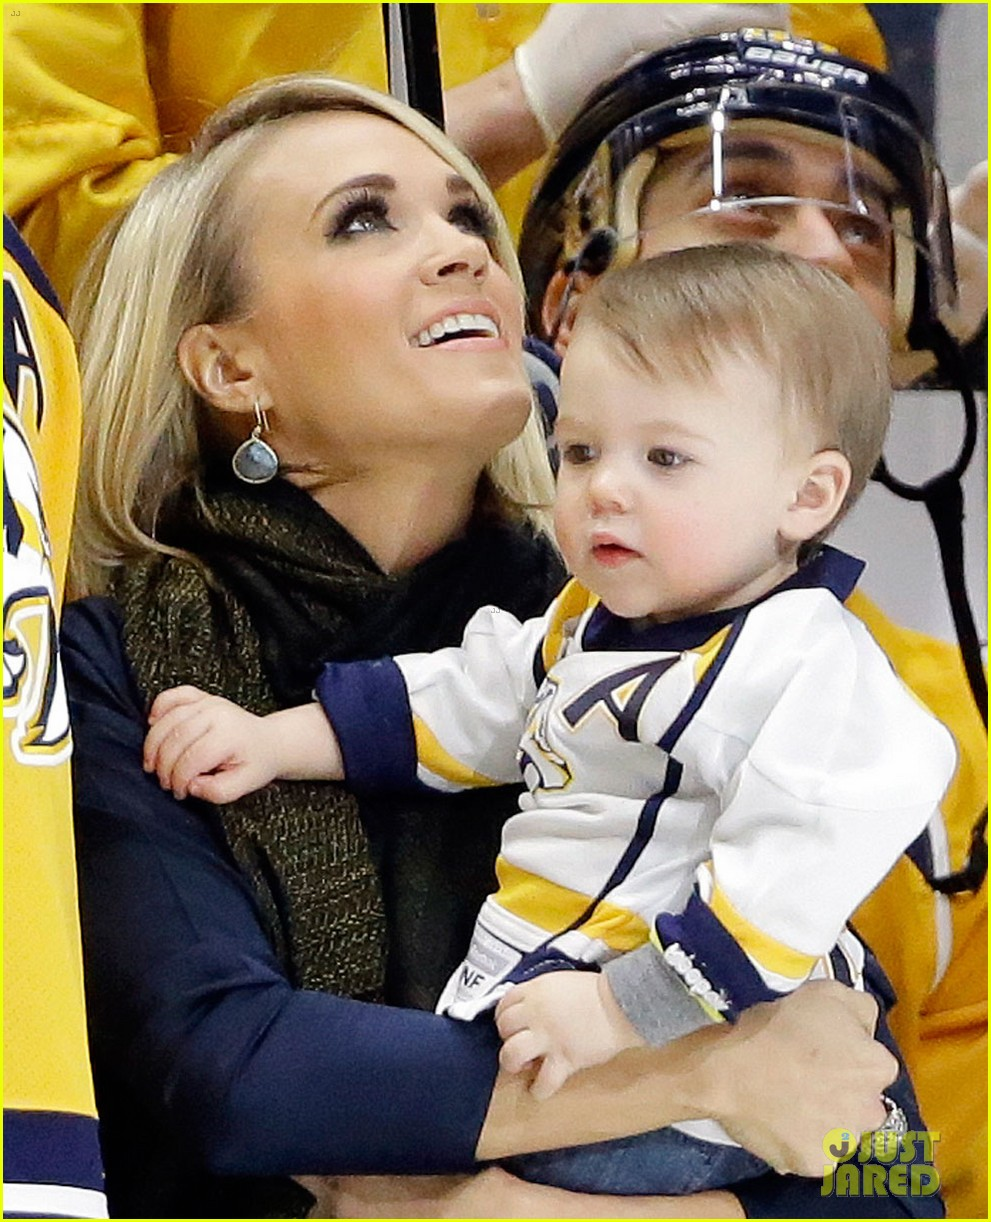 Carrie underwood mike fisher and baby pictures to pin on for Mike fisher and carrie underwood baby